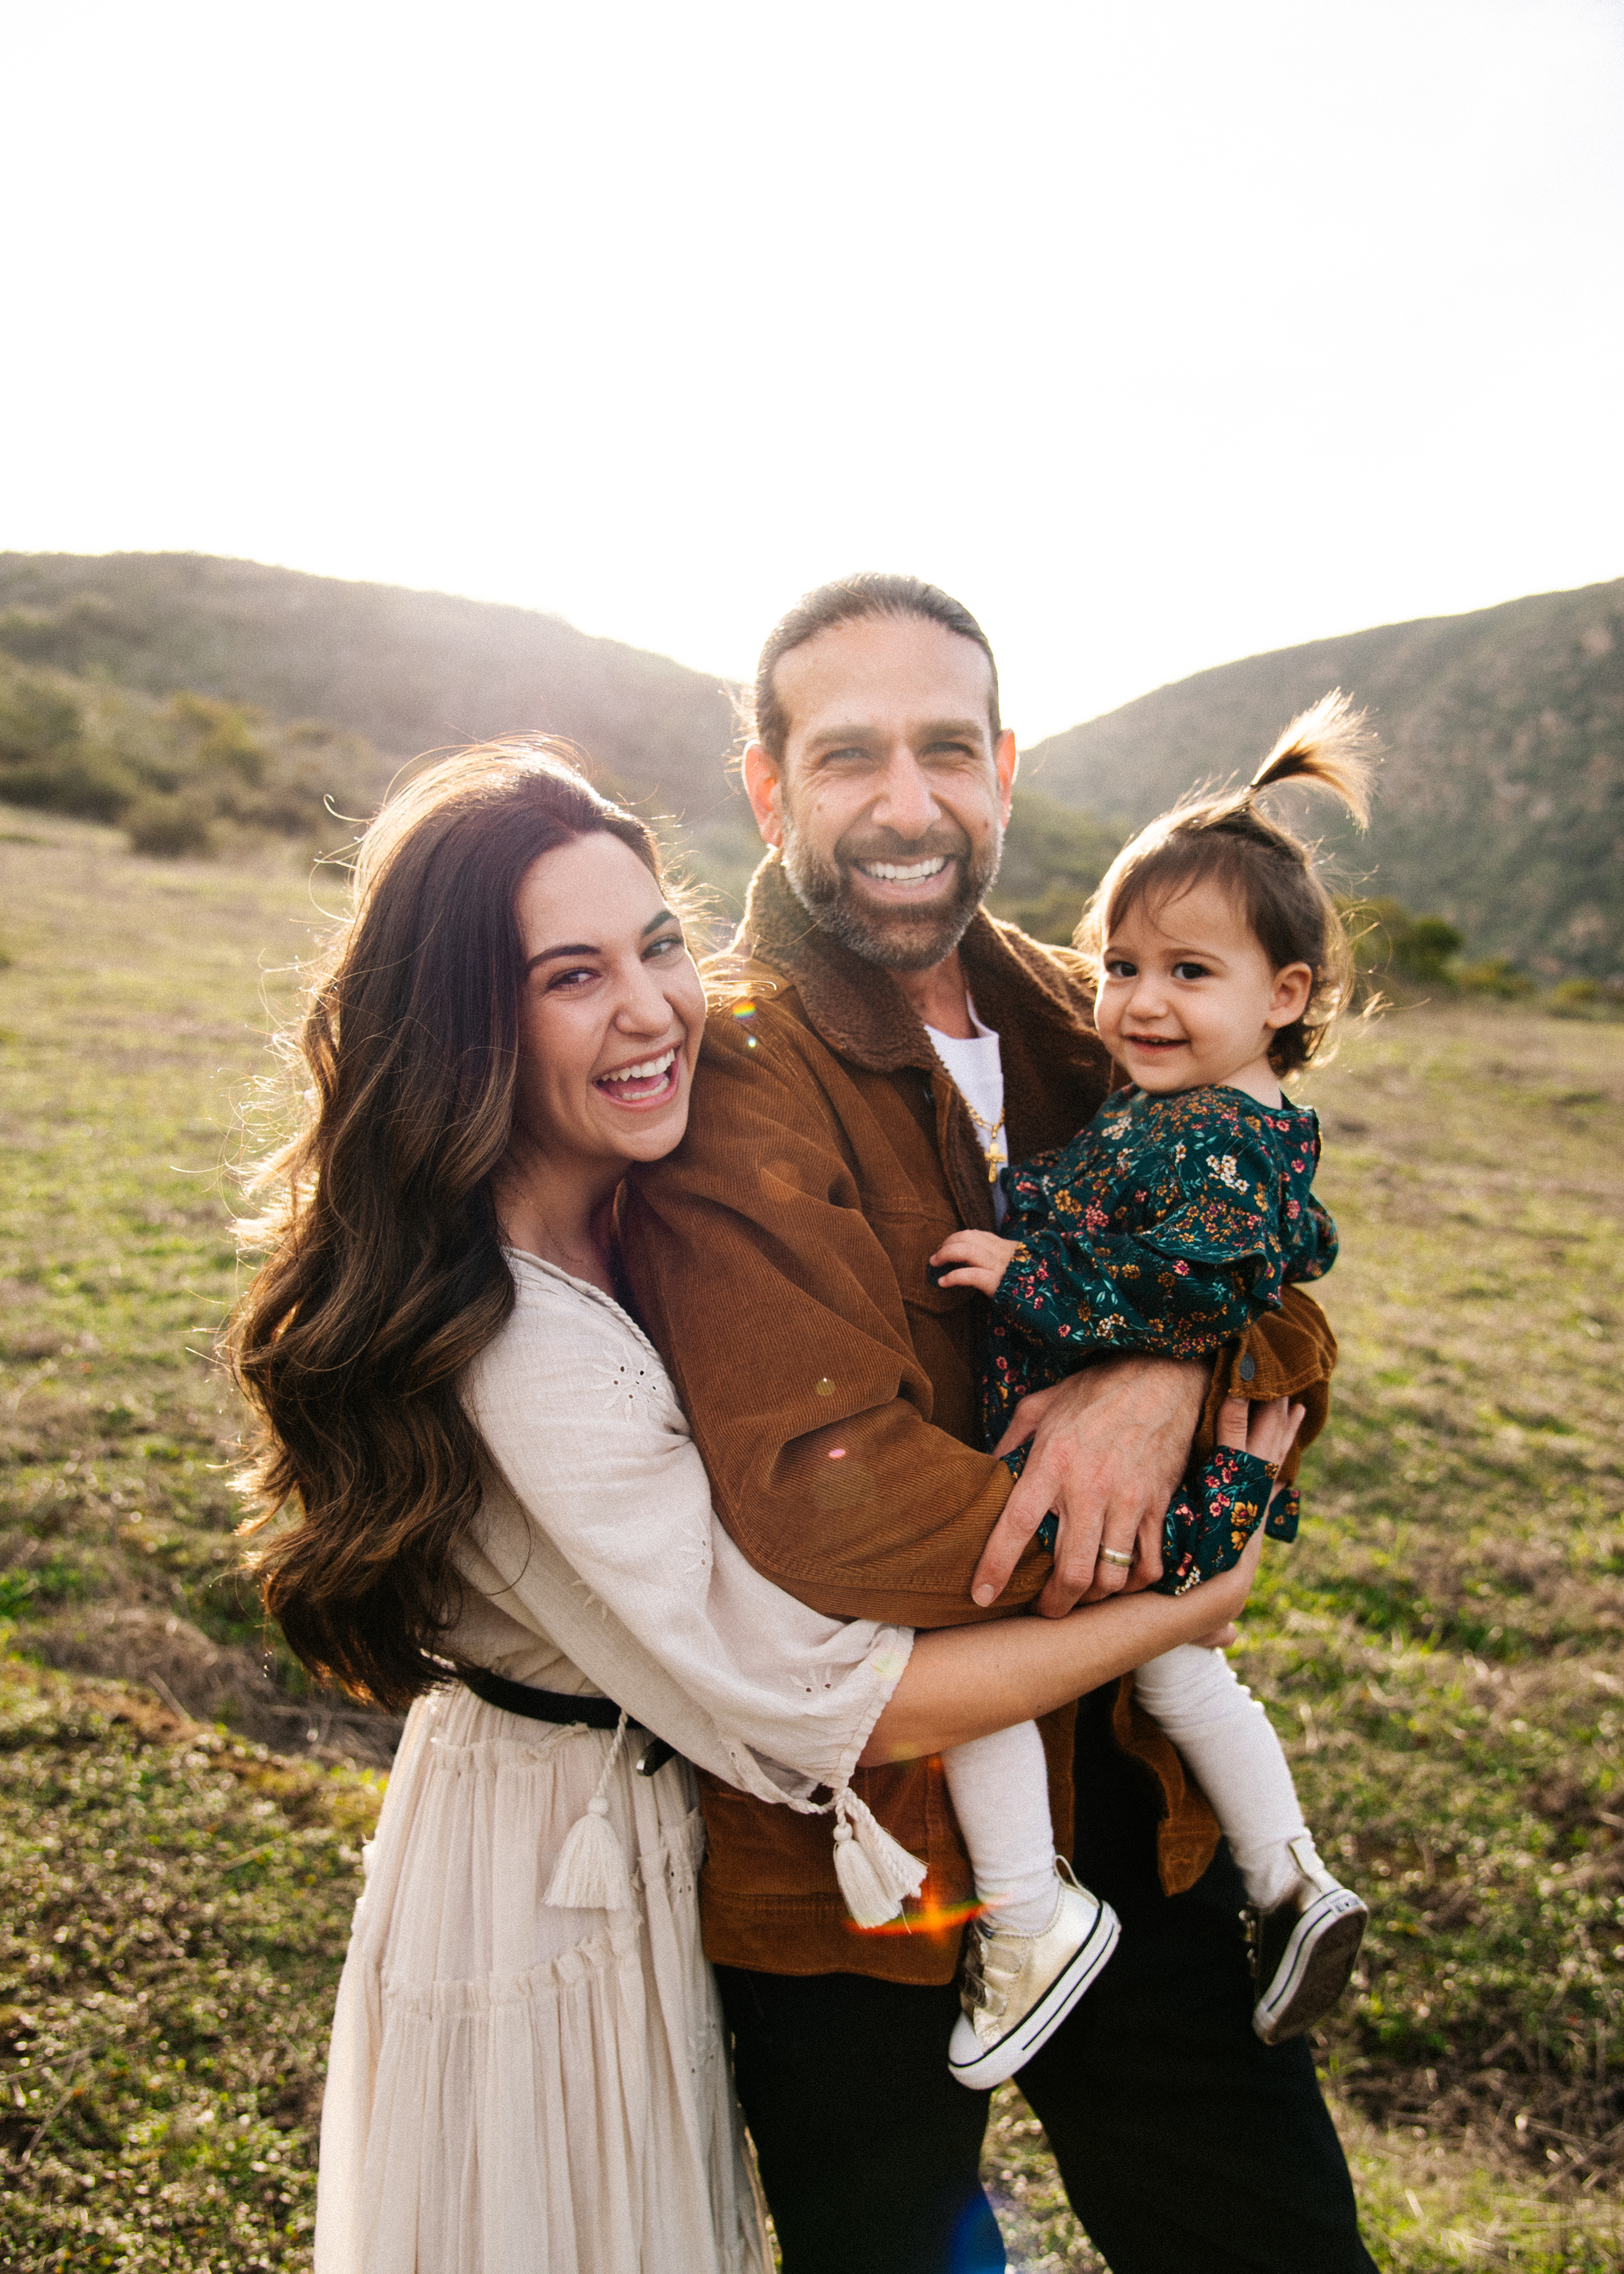 SamErica Studios - San Diego Family Photographer - Family Session at Mission Trails-8.jpg